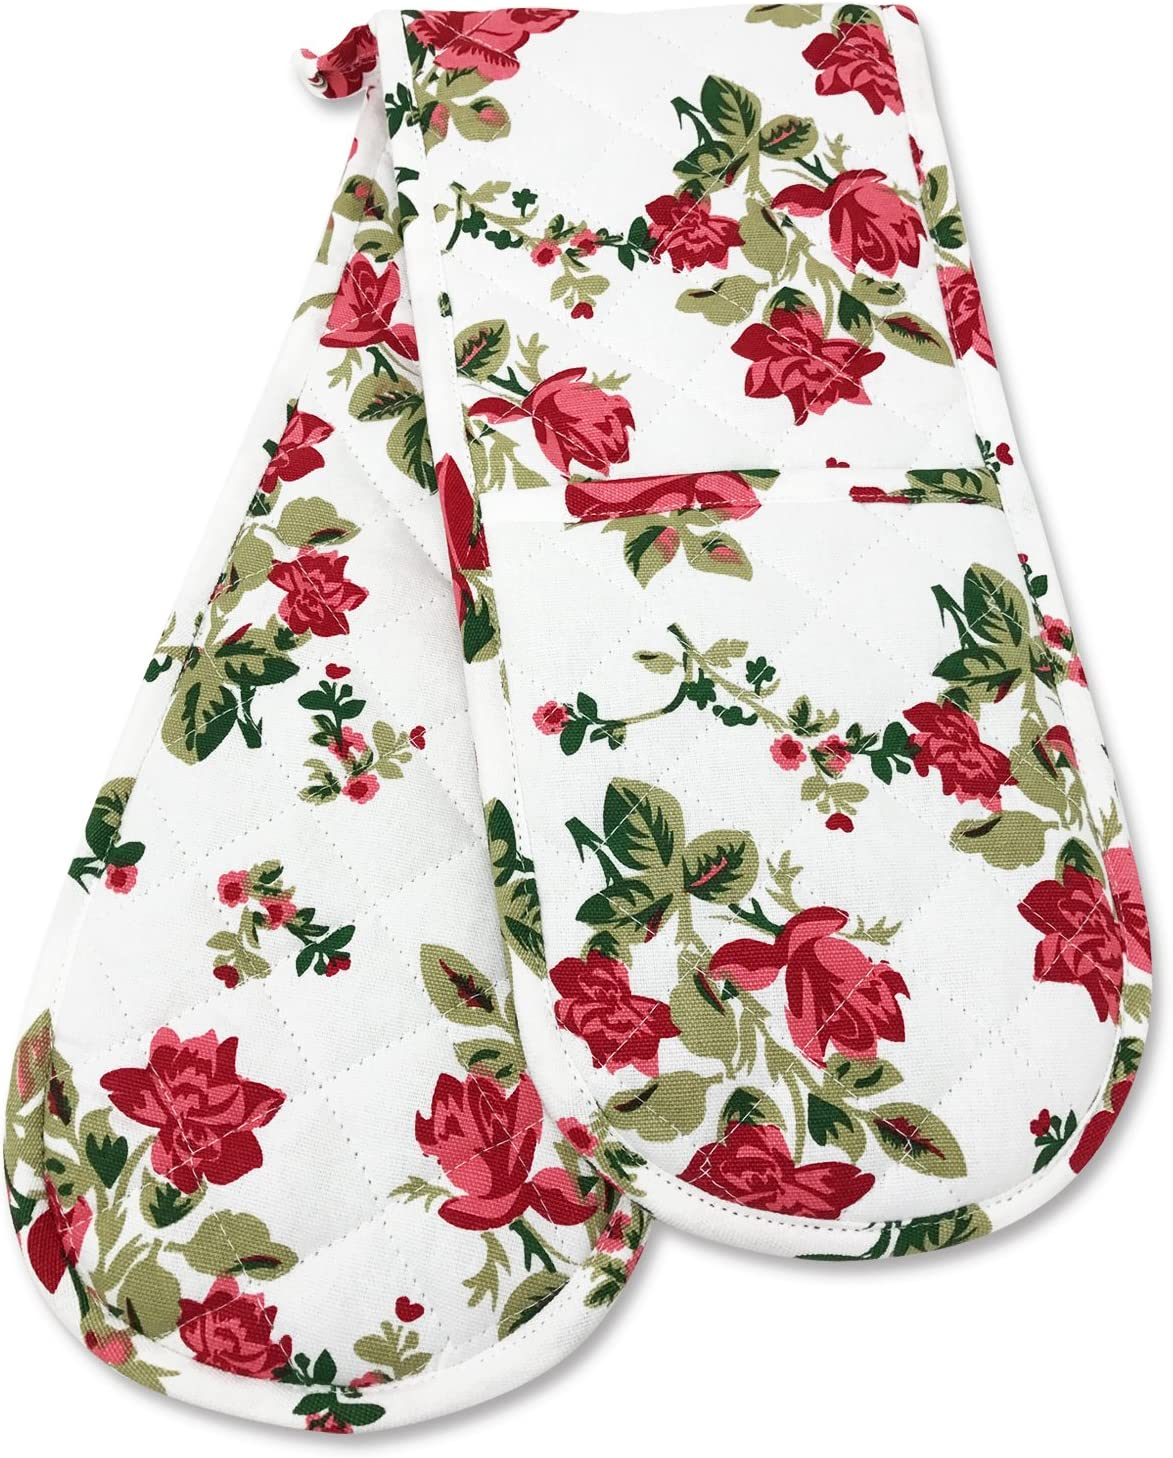 Double Oven Gloves, Smart Home, Pretty Red Roses Floral, 1 Piece, Long , Mittens, Heat Resistant, 100% Cotton, Extra Thick, Quilted